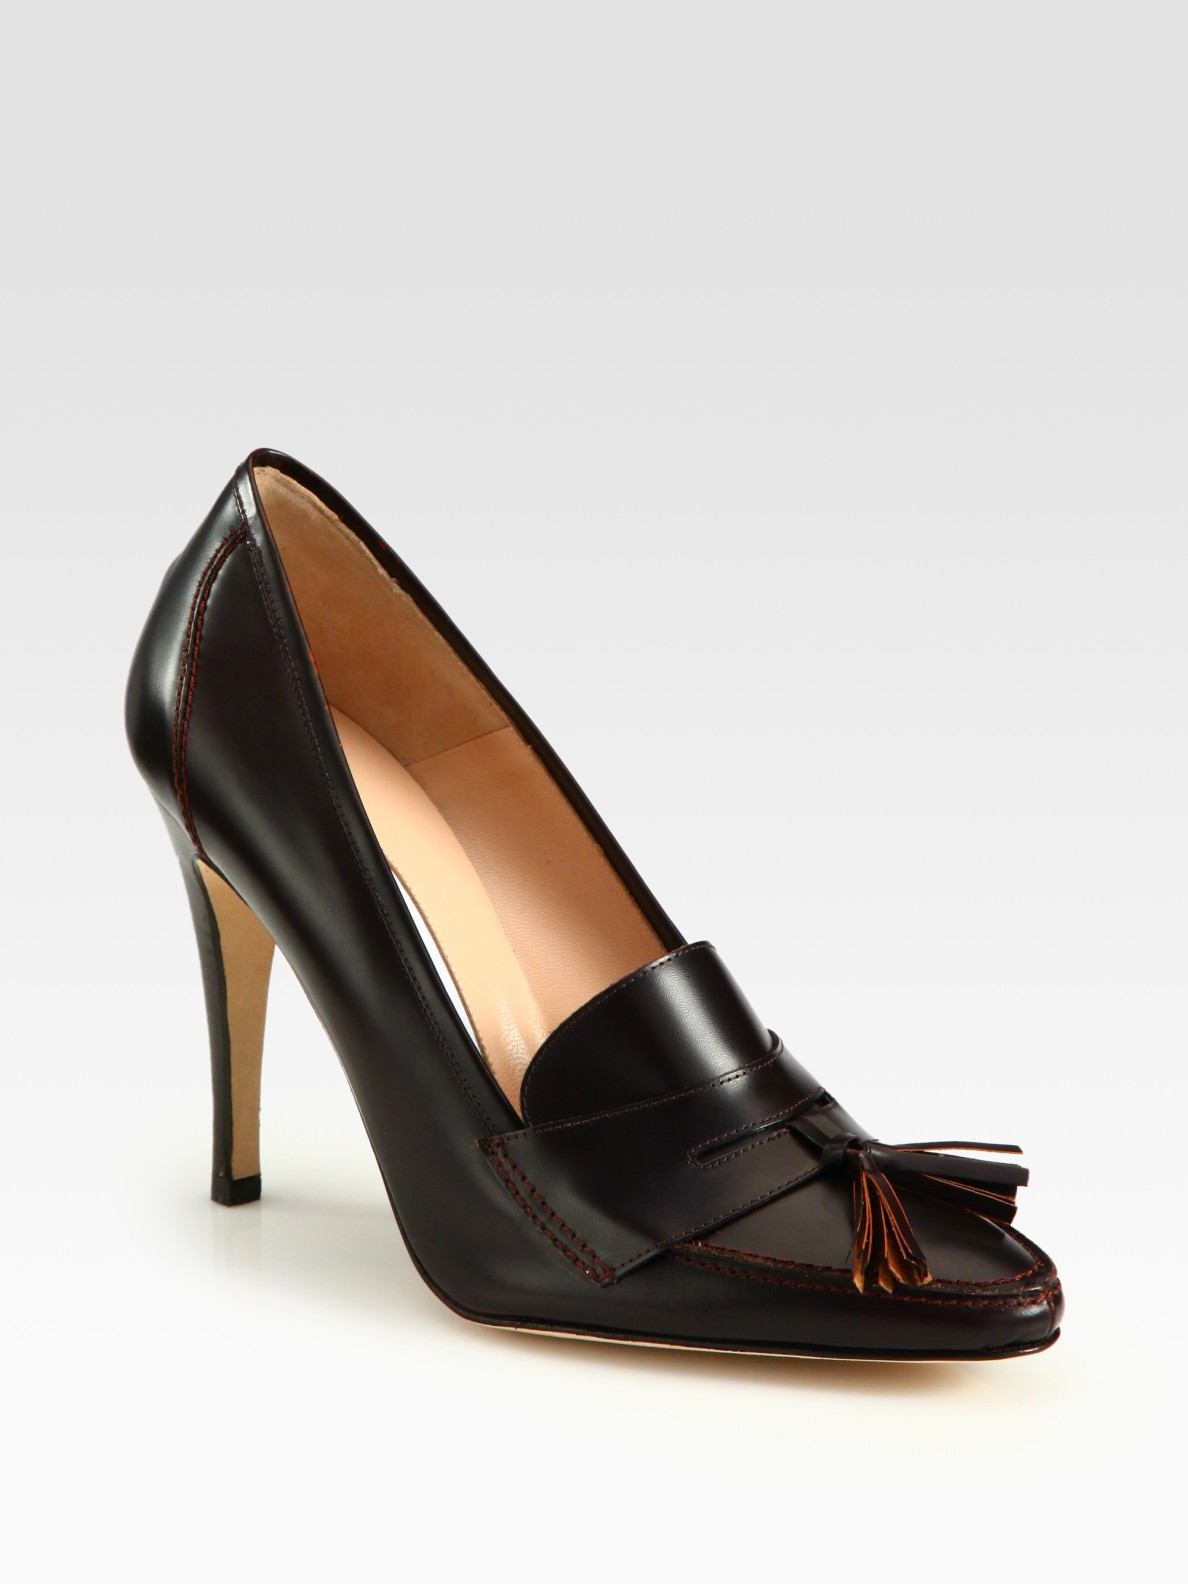 Lyst Manolo Blahnik Leather Loafer Pumps In Brown